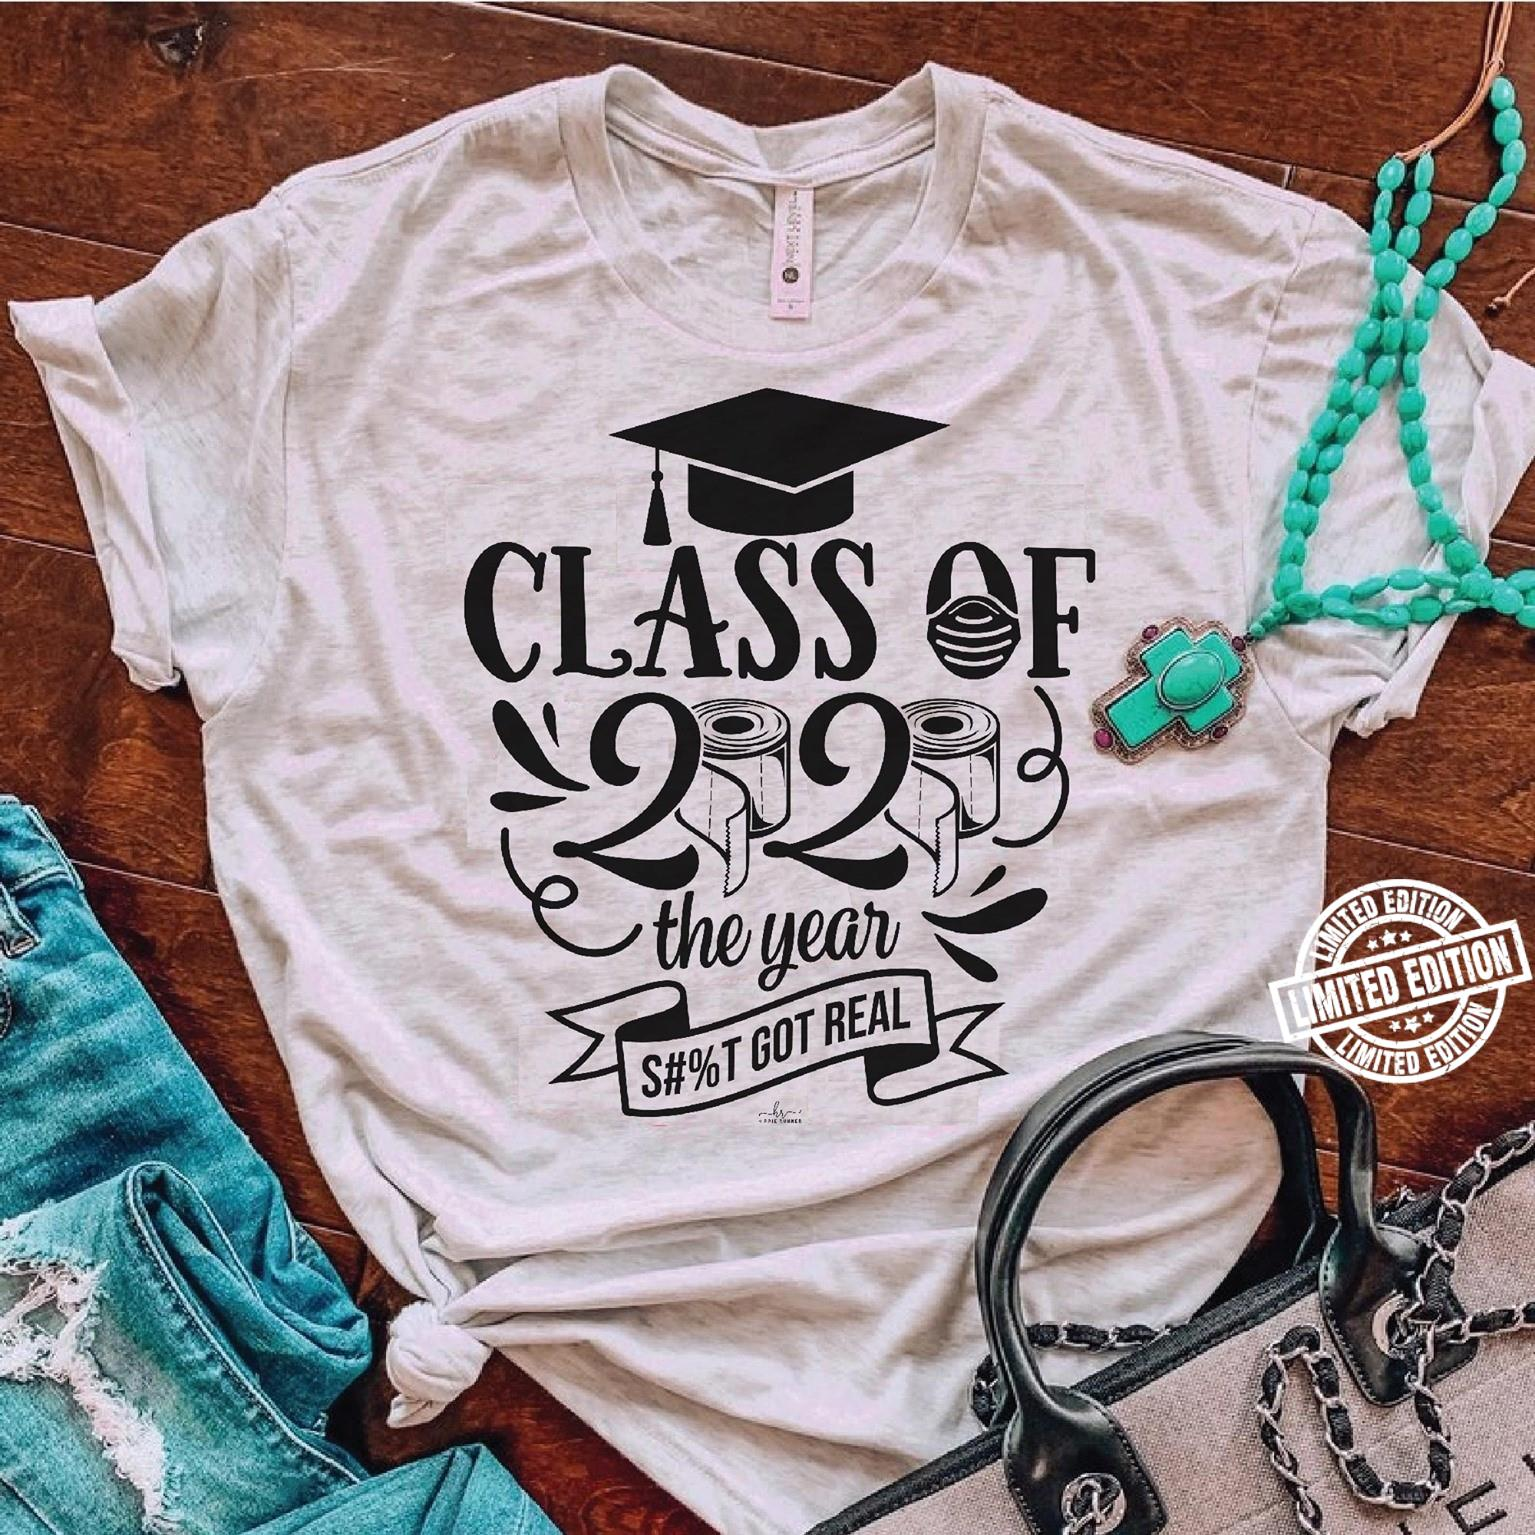 Class of 2020 the years shit got real shirt